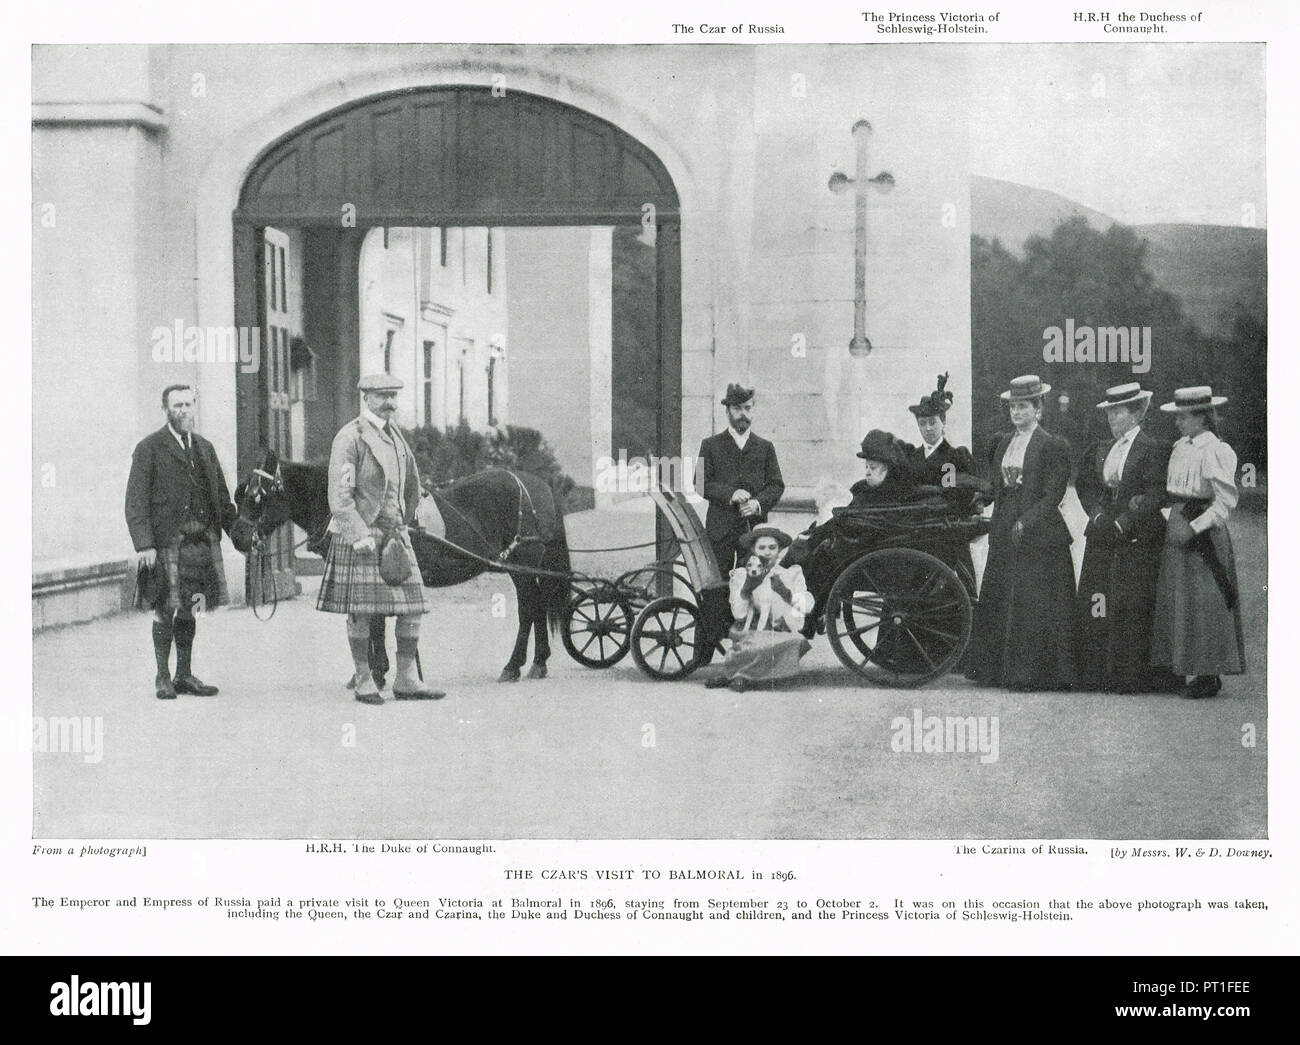 Visit of Tsar Nicholas II (last emperor of Russia) and his wife Alexandra Feodorovna, Alix of Hesse, to Balmoral castle, Scotland, as guests of Queen Victoria, 1896 - Stock Image